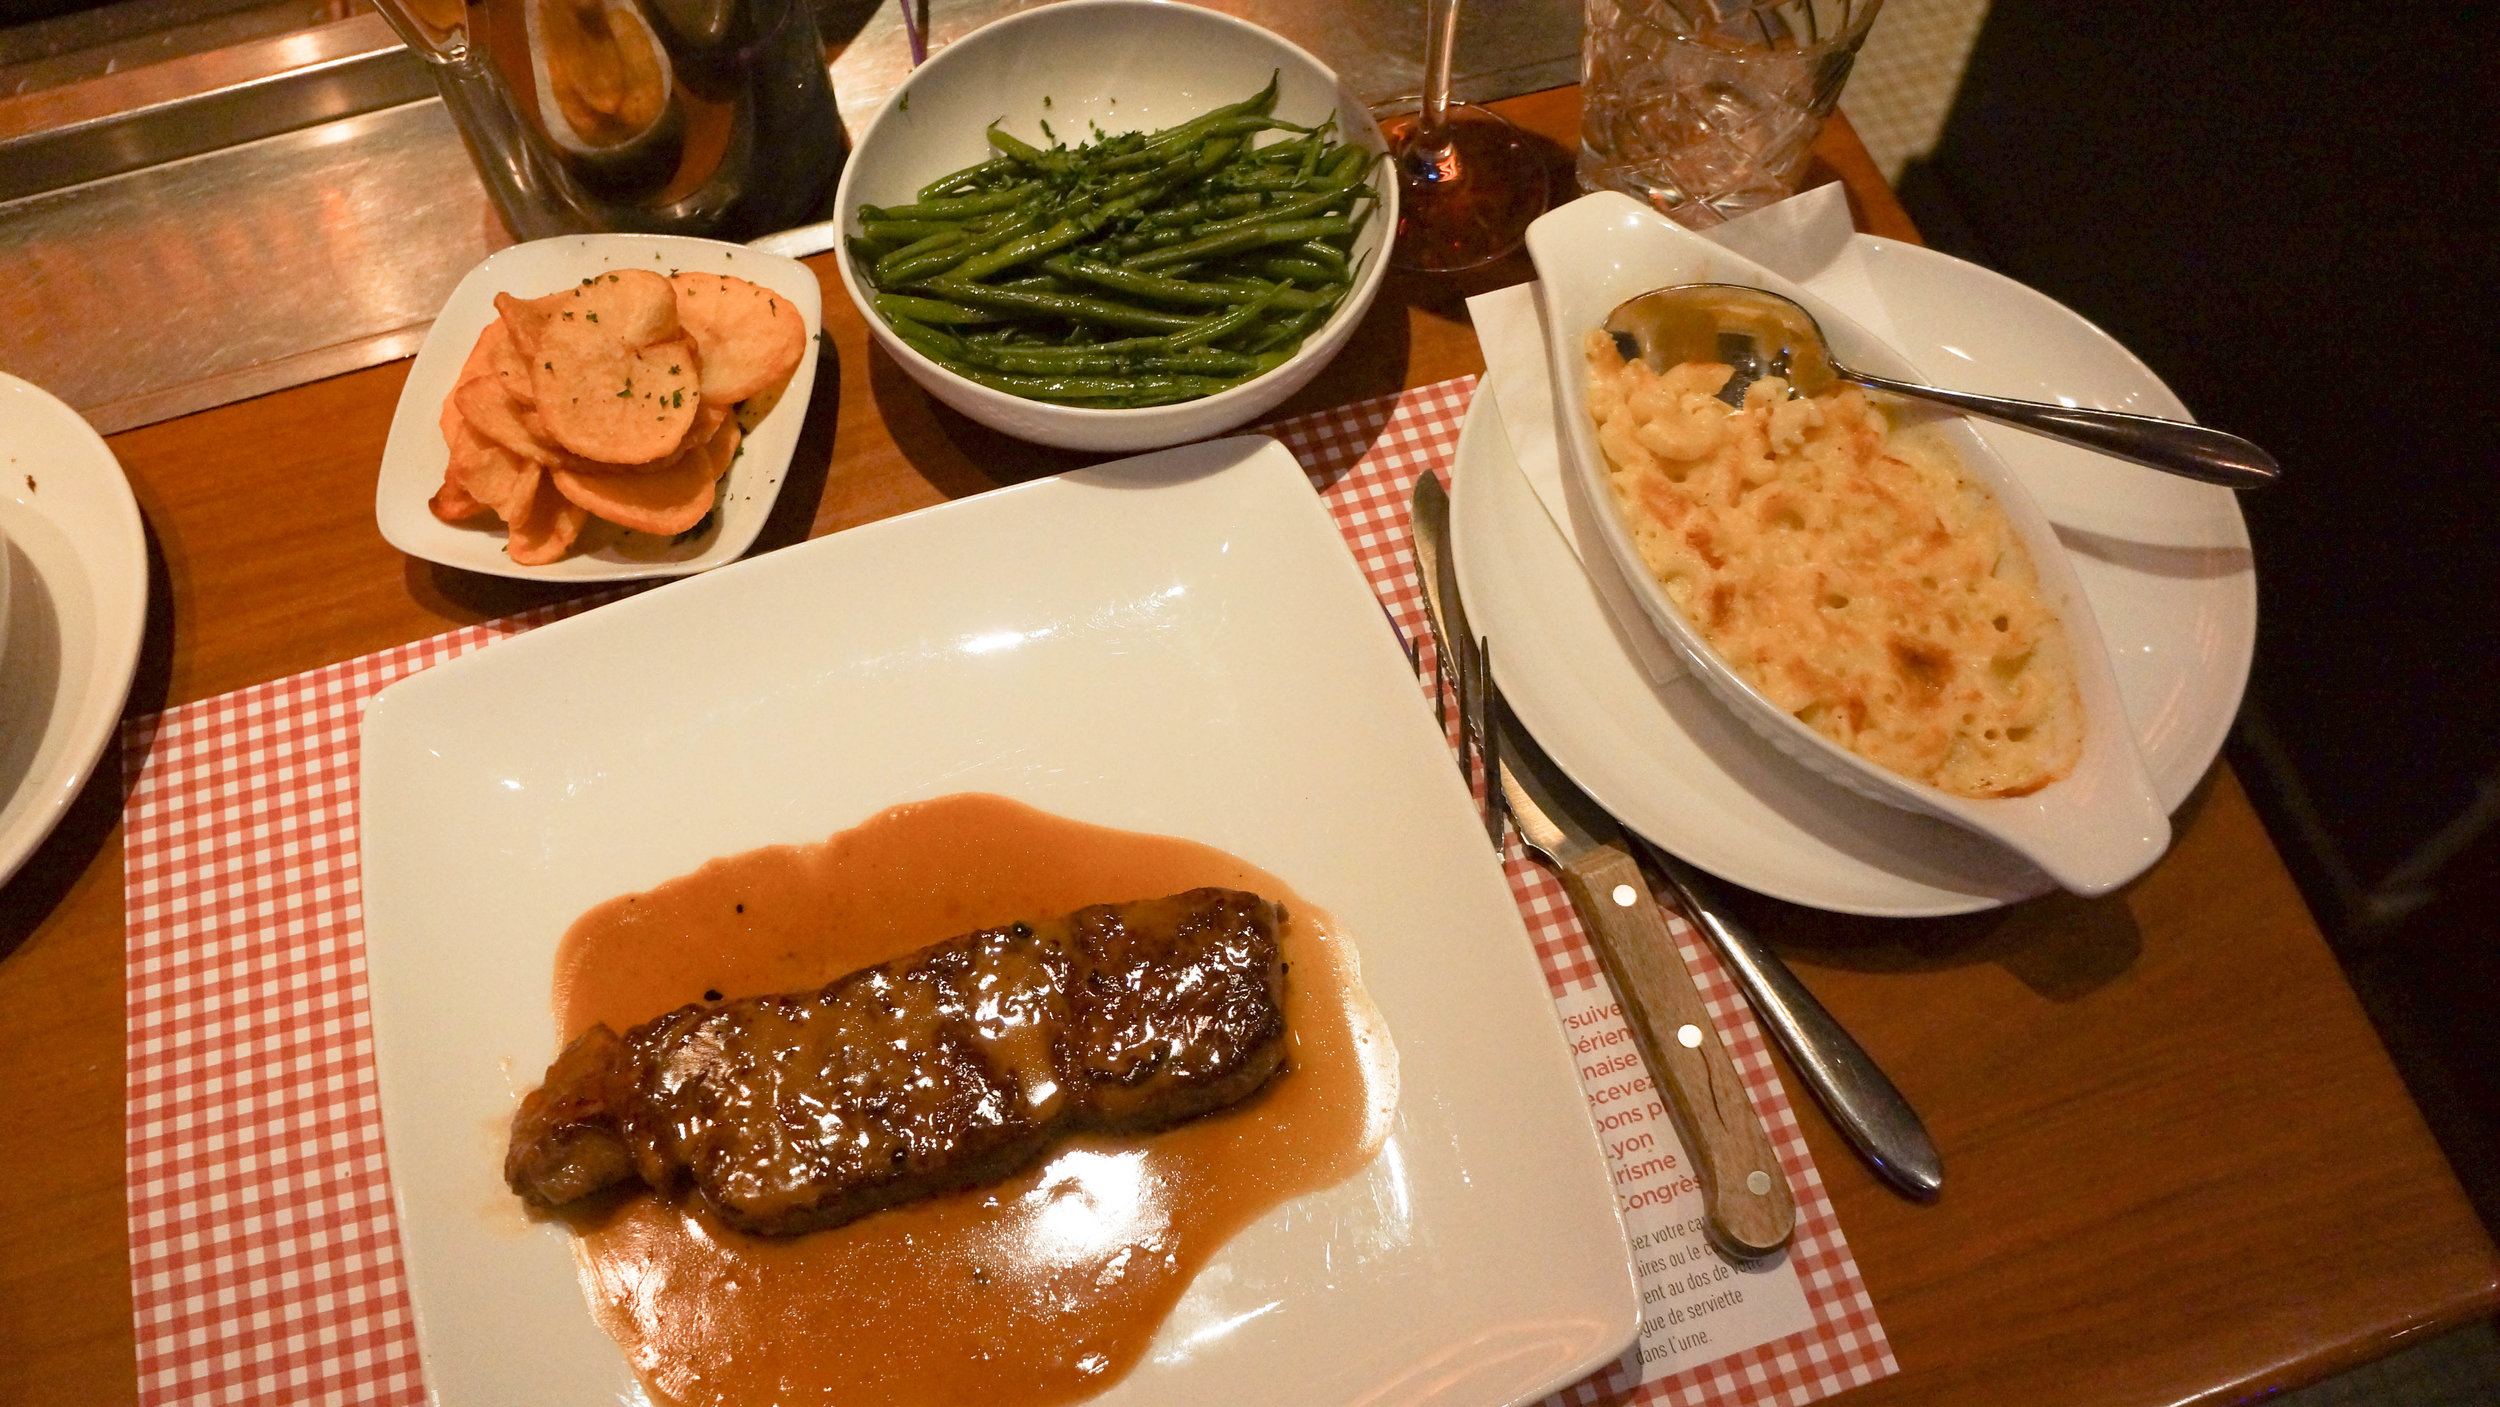 Beef sirloin steak, flambéed with cognac and doused in a black peppercorn sauce